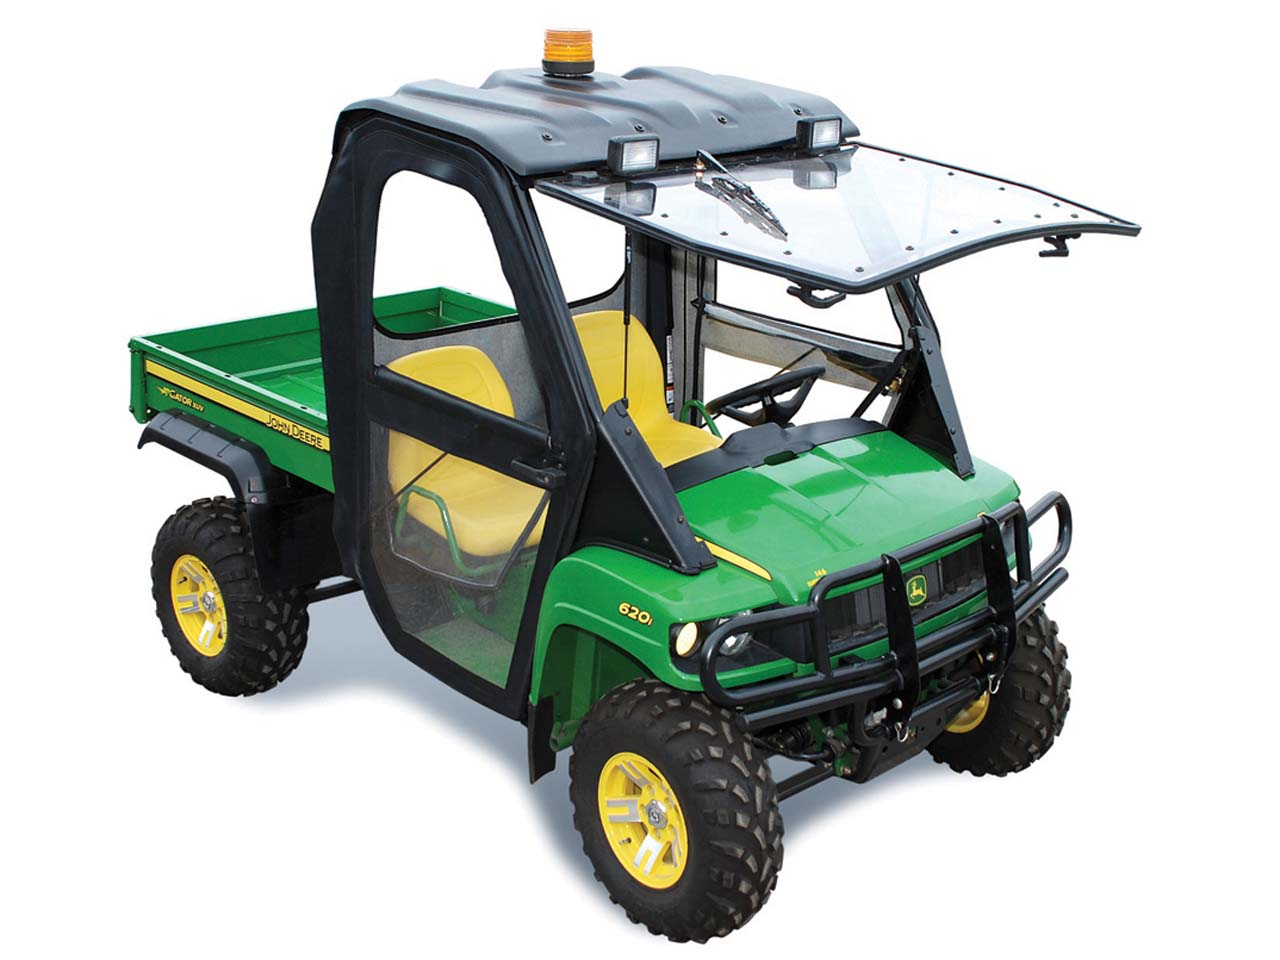 curtis introduces new soft sided cab for john deere gator. Black Bedroom Furniture Sets. Home Design Ideas